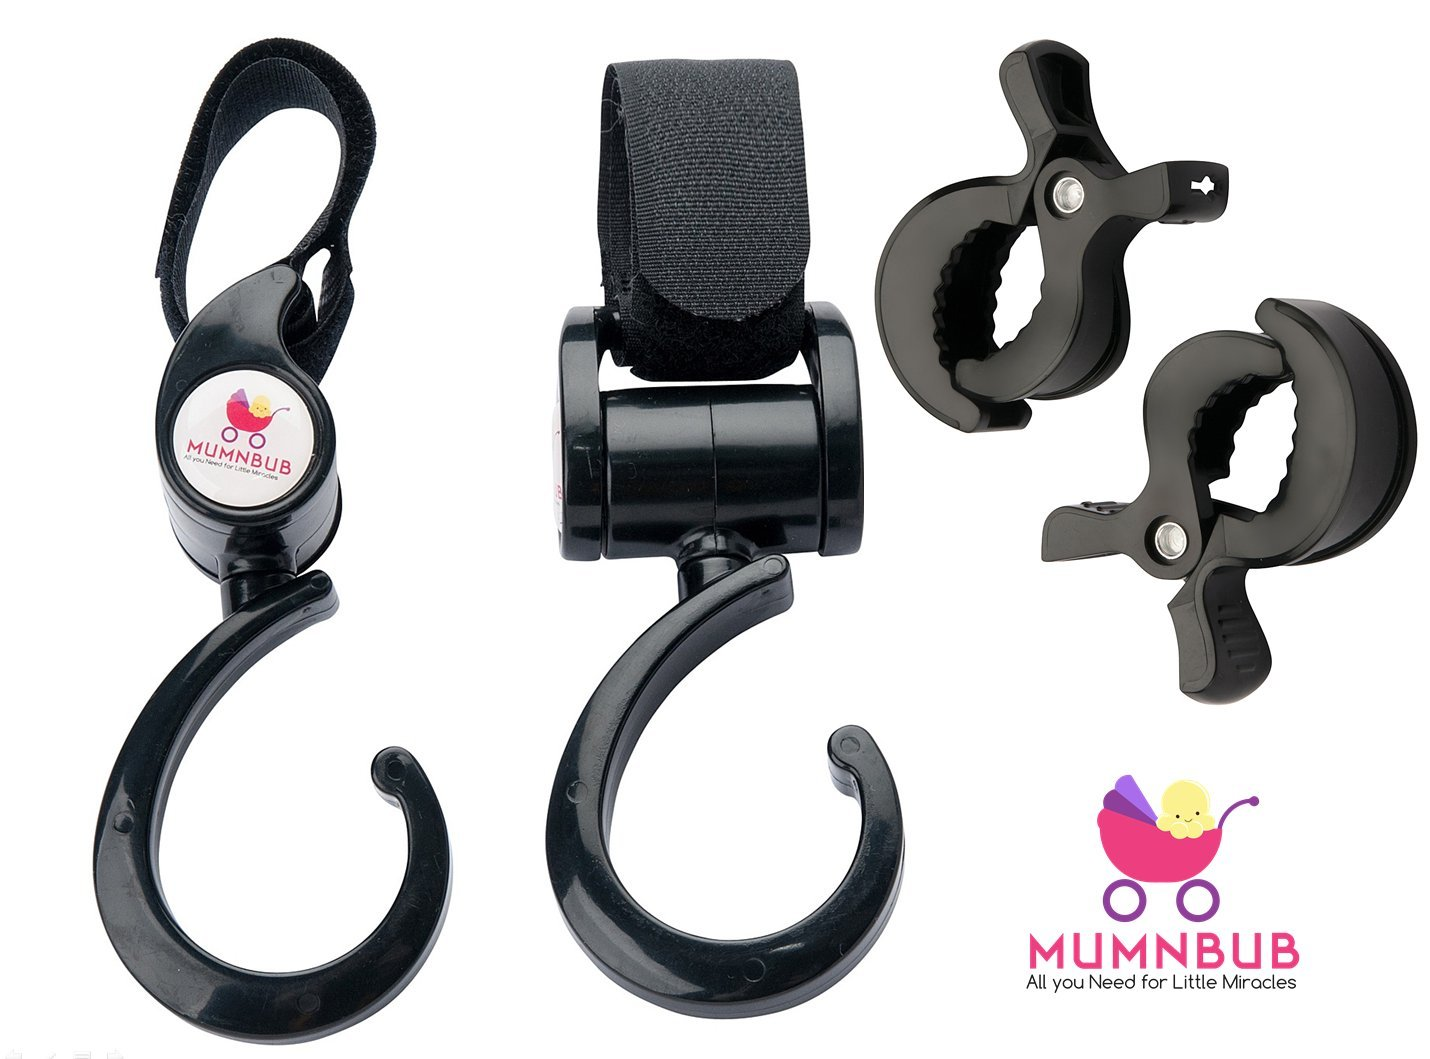 MumnBub Stroller Hook - 2 Pack (Black) Multi-Purpose Heavy Duty Buggy Clips for Mommy - Universal Fit Perfect Pram Accessories for Hanging Diaper bag, Shopping bag, Groceries -Includes 2 Stroller Pegs